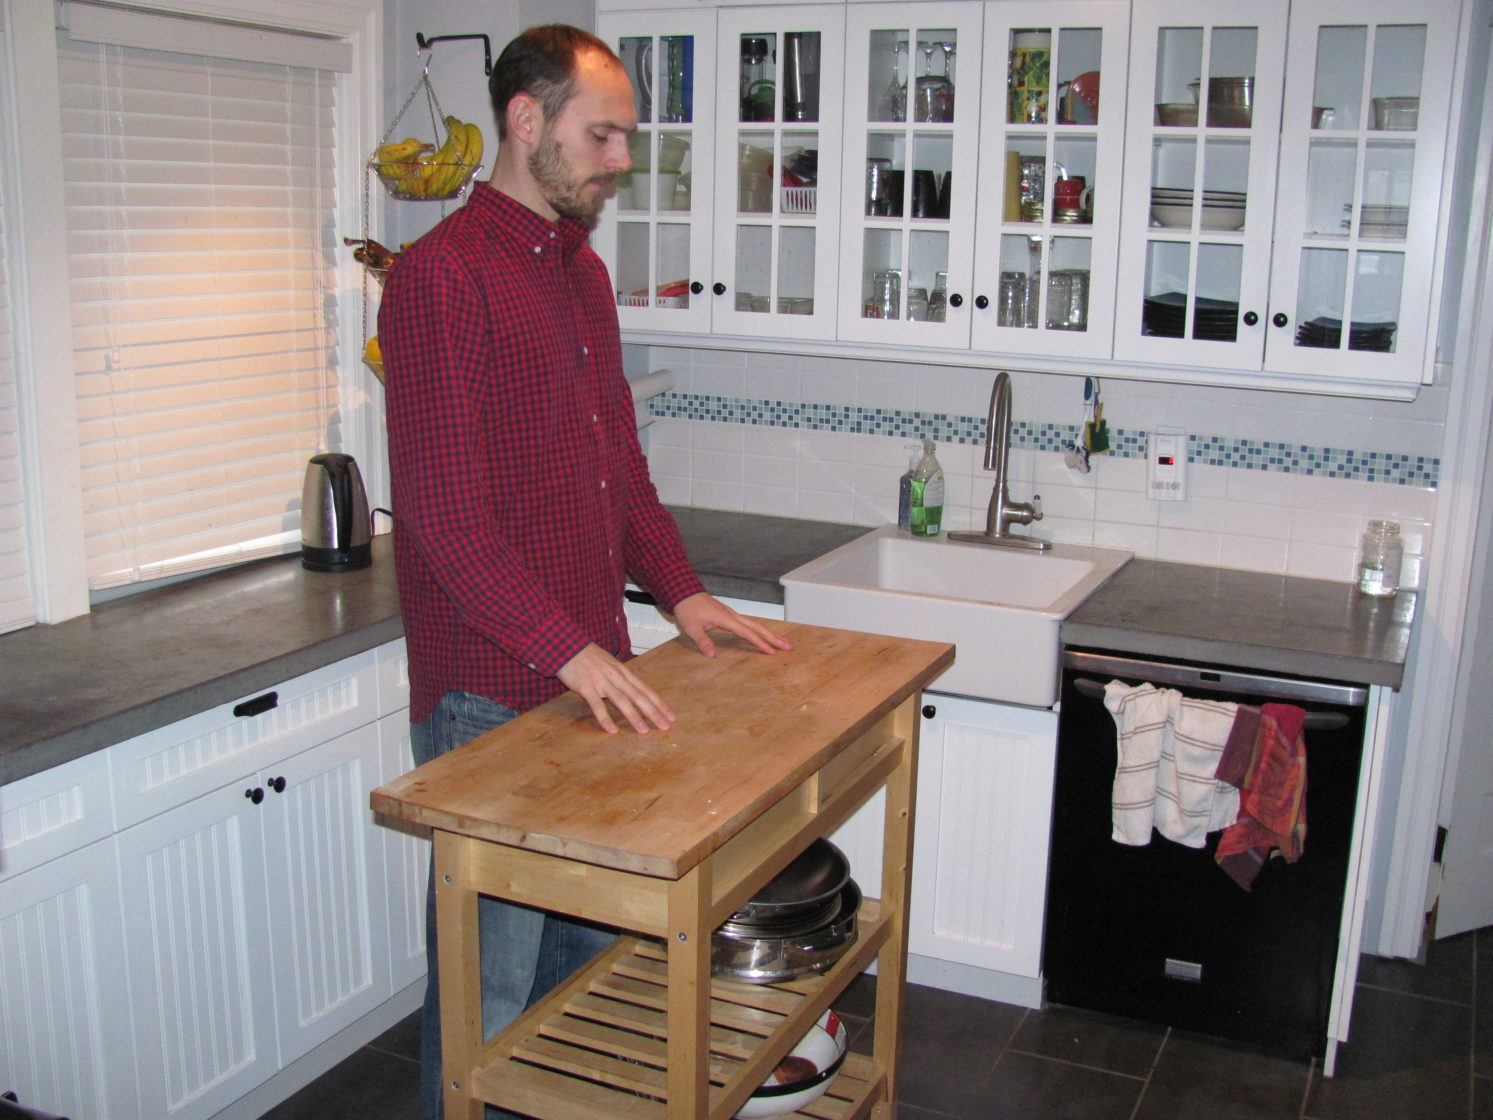 Kitchen Island Heights | Raised Kitchen Island Height For Tall People Tall Life